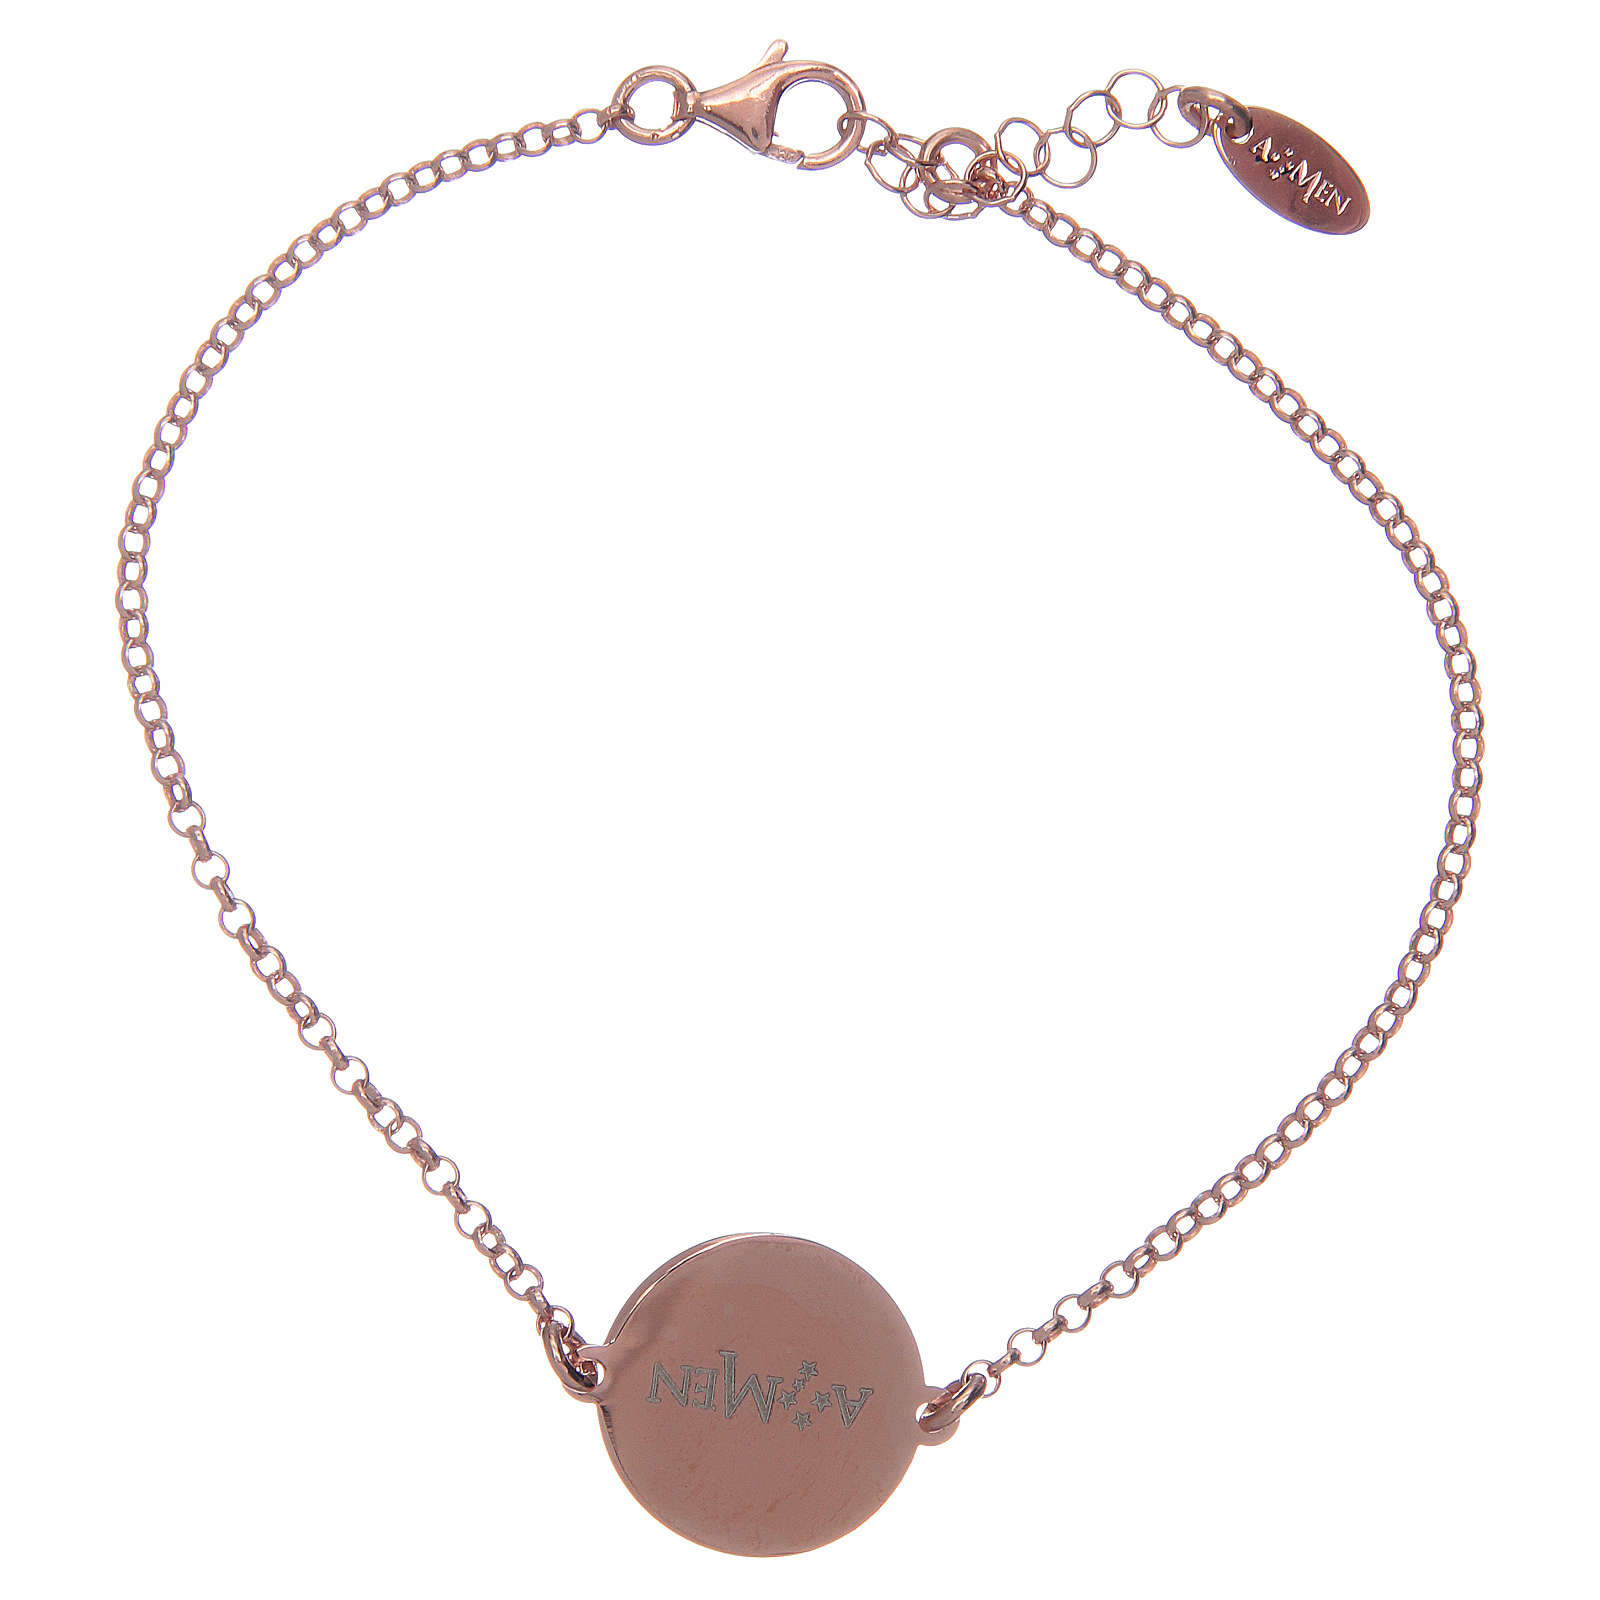 Amen bracelet in 925 sterling silver finished in rosè with Hail Mary prayer in latin 4